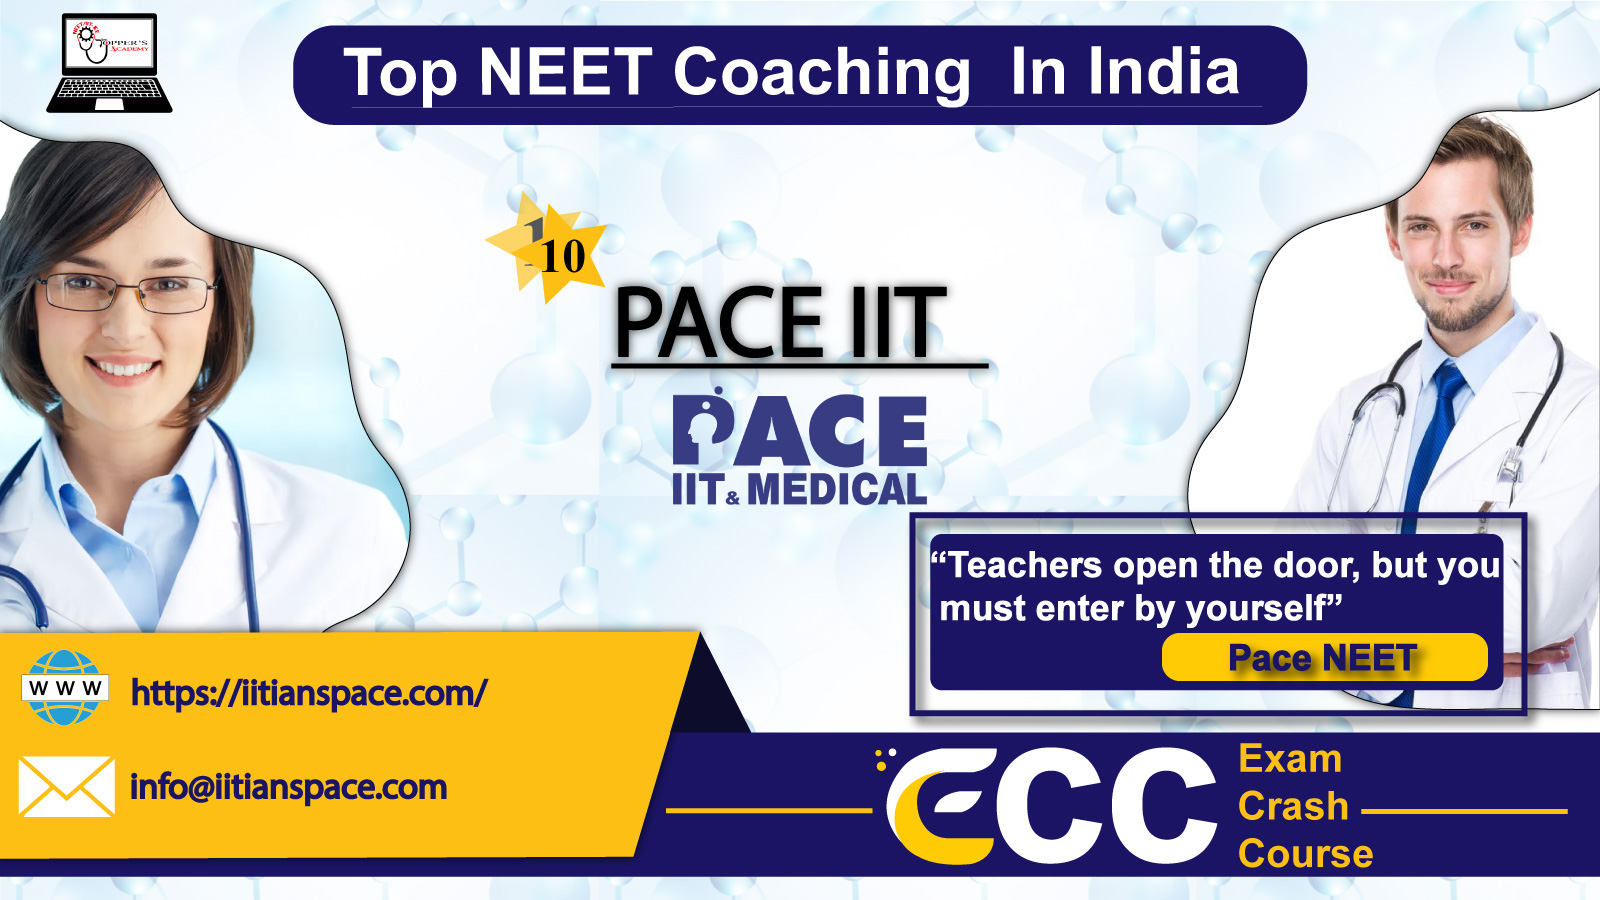 Top coaching institute for neet in india